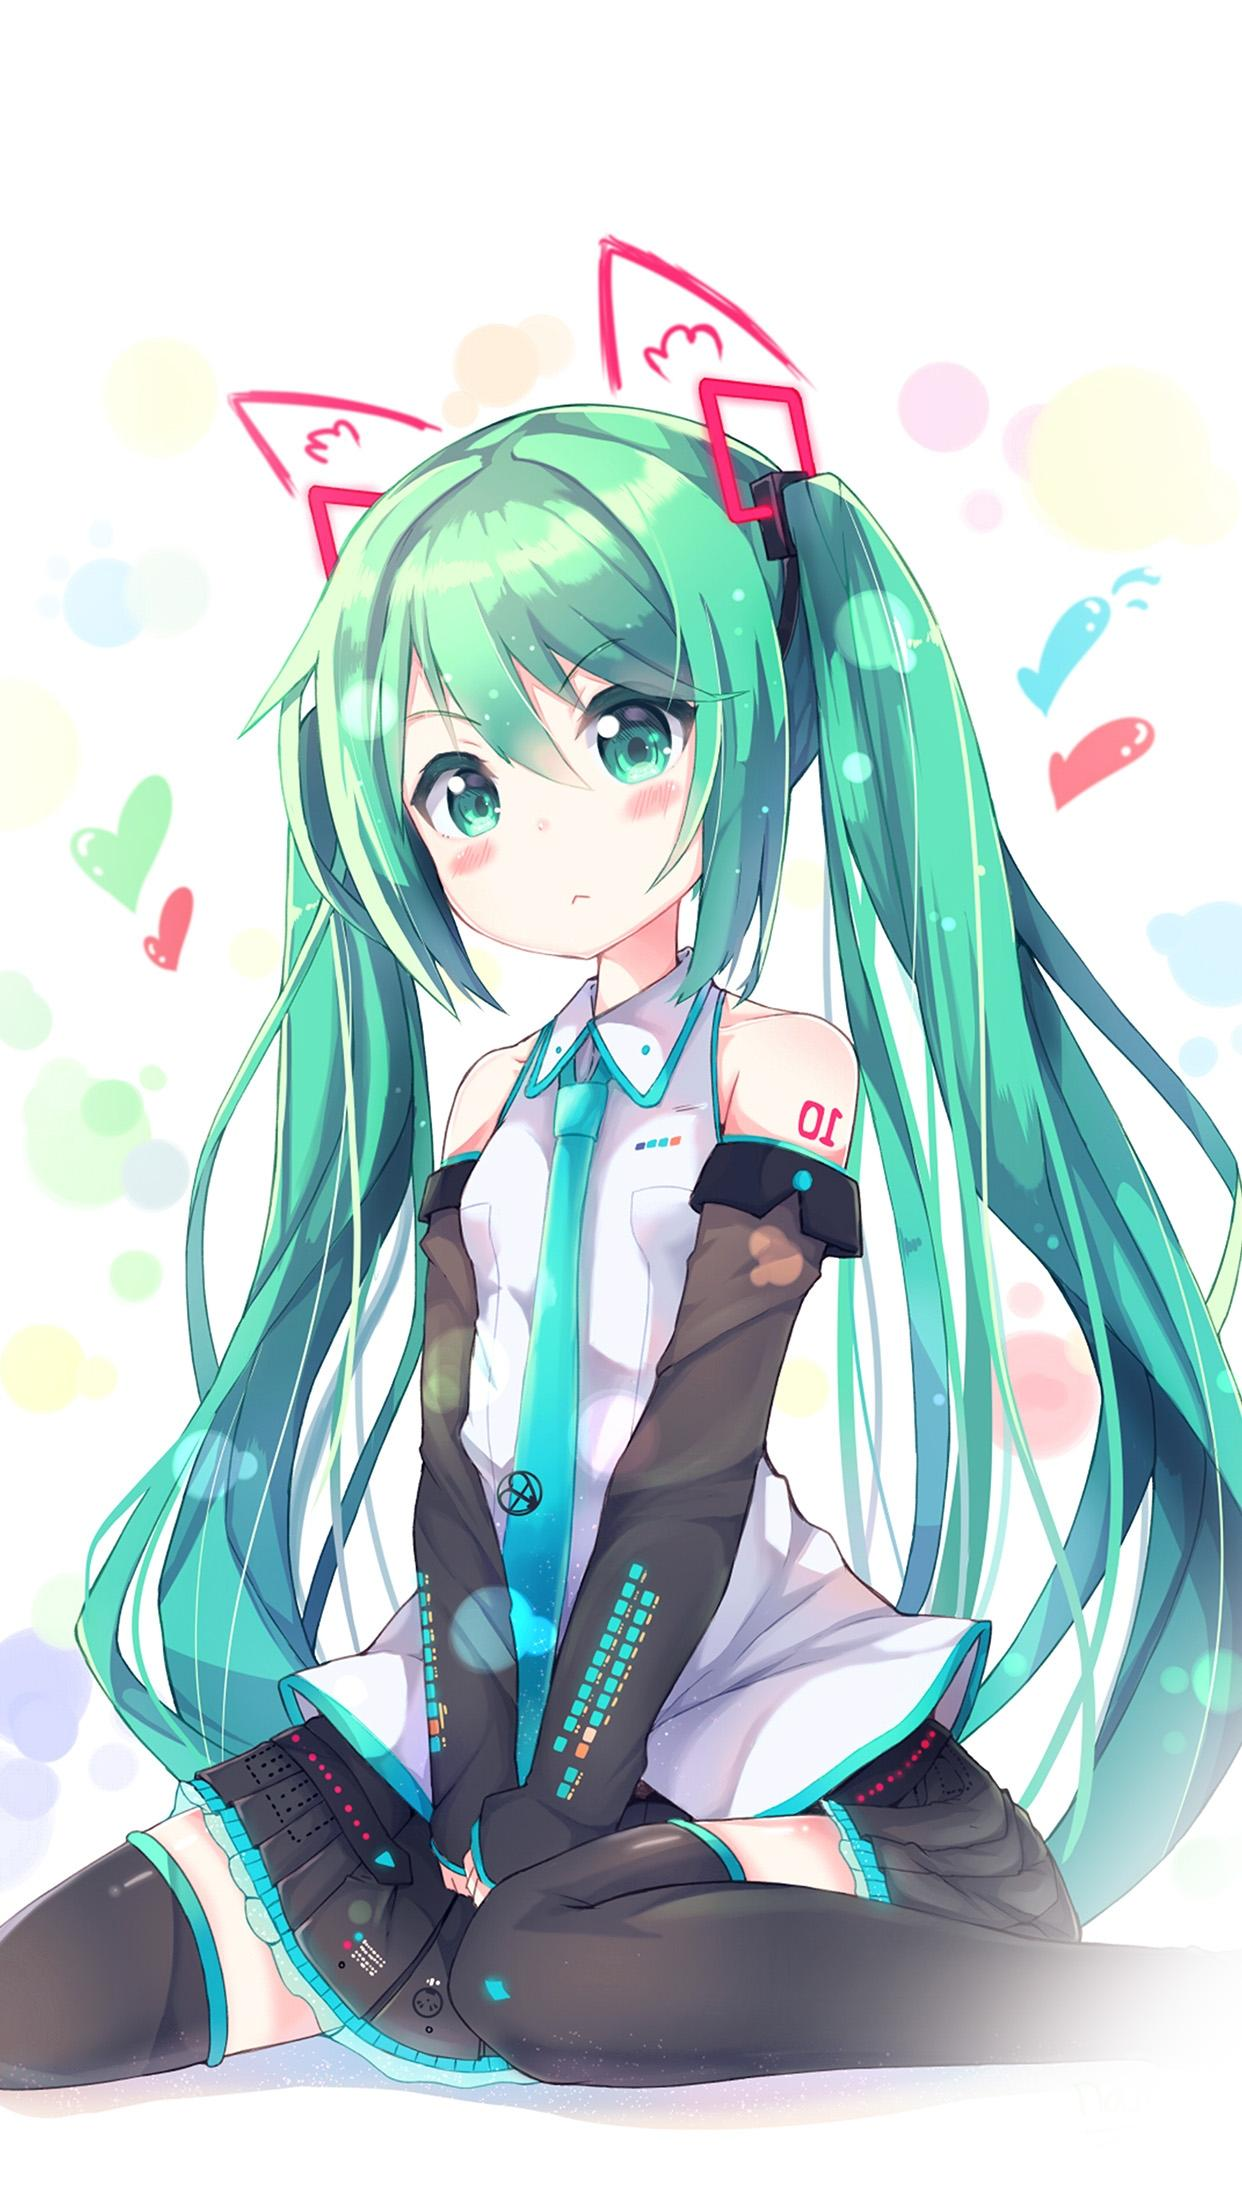 Anime Girl Cute Android Wallpapers - Wallpaper Cave